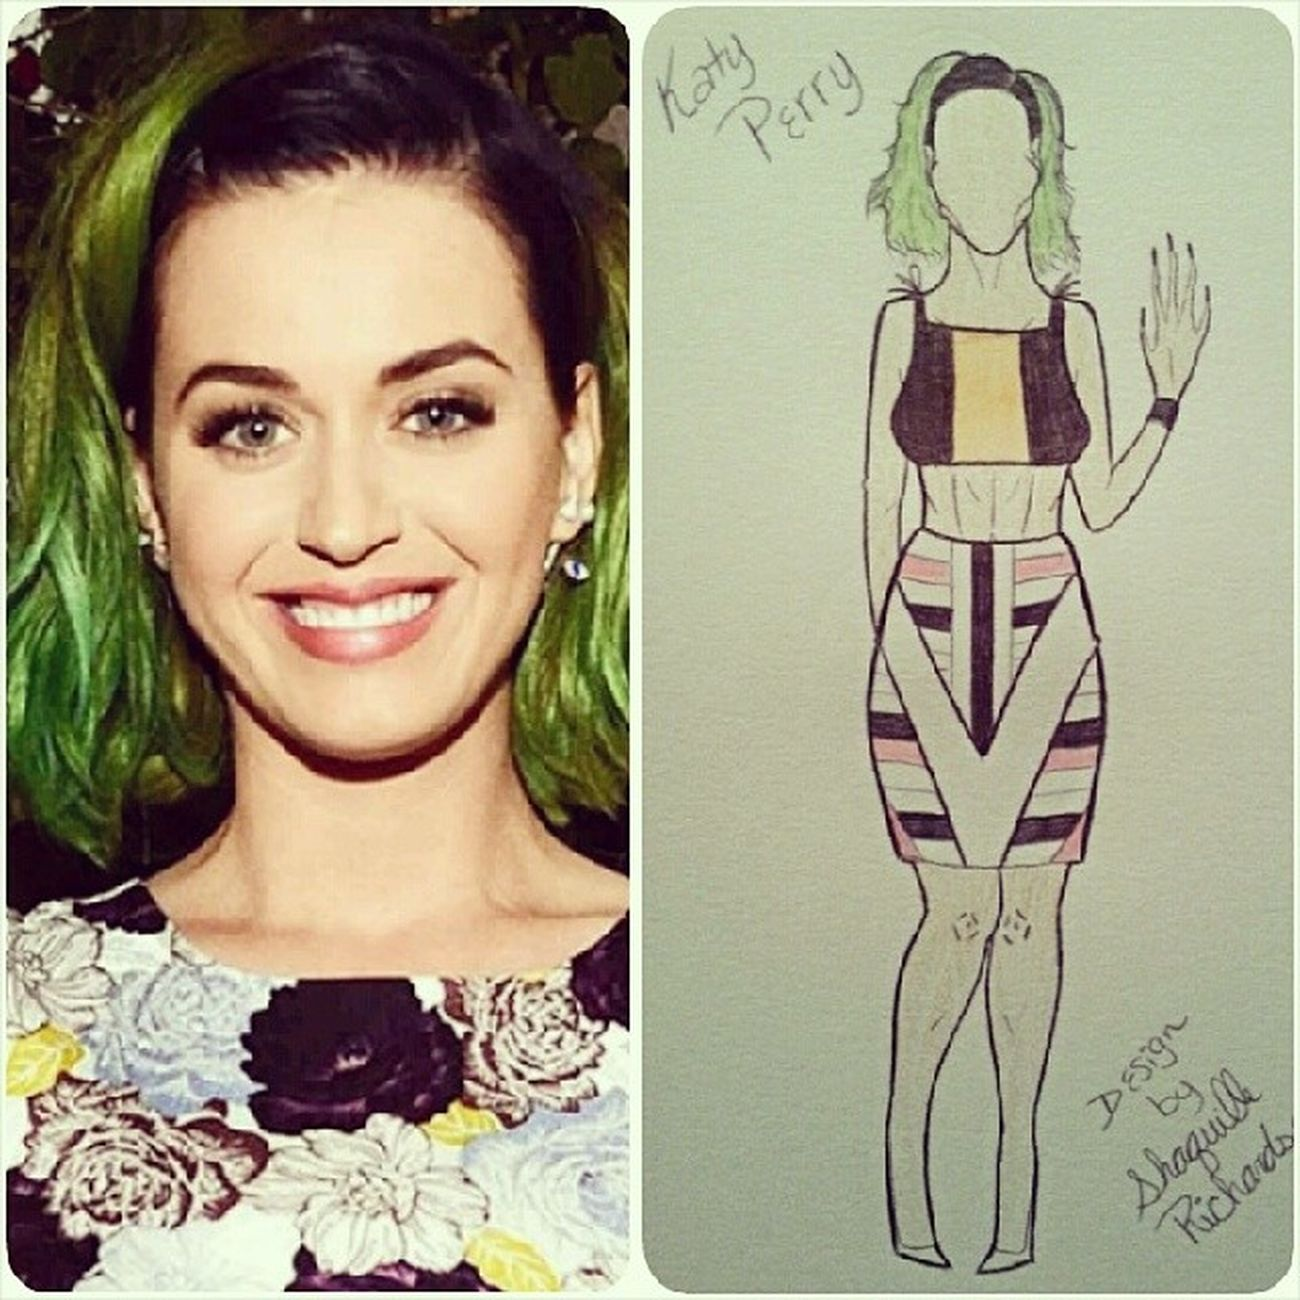 Katy Perry Design @katyperry @theellenshow @edglavin @keltieknight Katyperry ThePrismaticWorldTour Kittypurry Unconditionally darkhorse legendarylovers celebritystylist celebstylist fashion fashionillustrator fashionillustration f4f followforfollow follow4follow instagood instamood igdaily instadaily illustration art artist theinsider la nyc miami bbmas bbmas2014